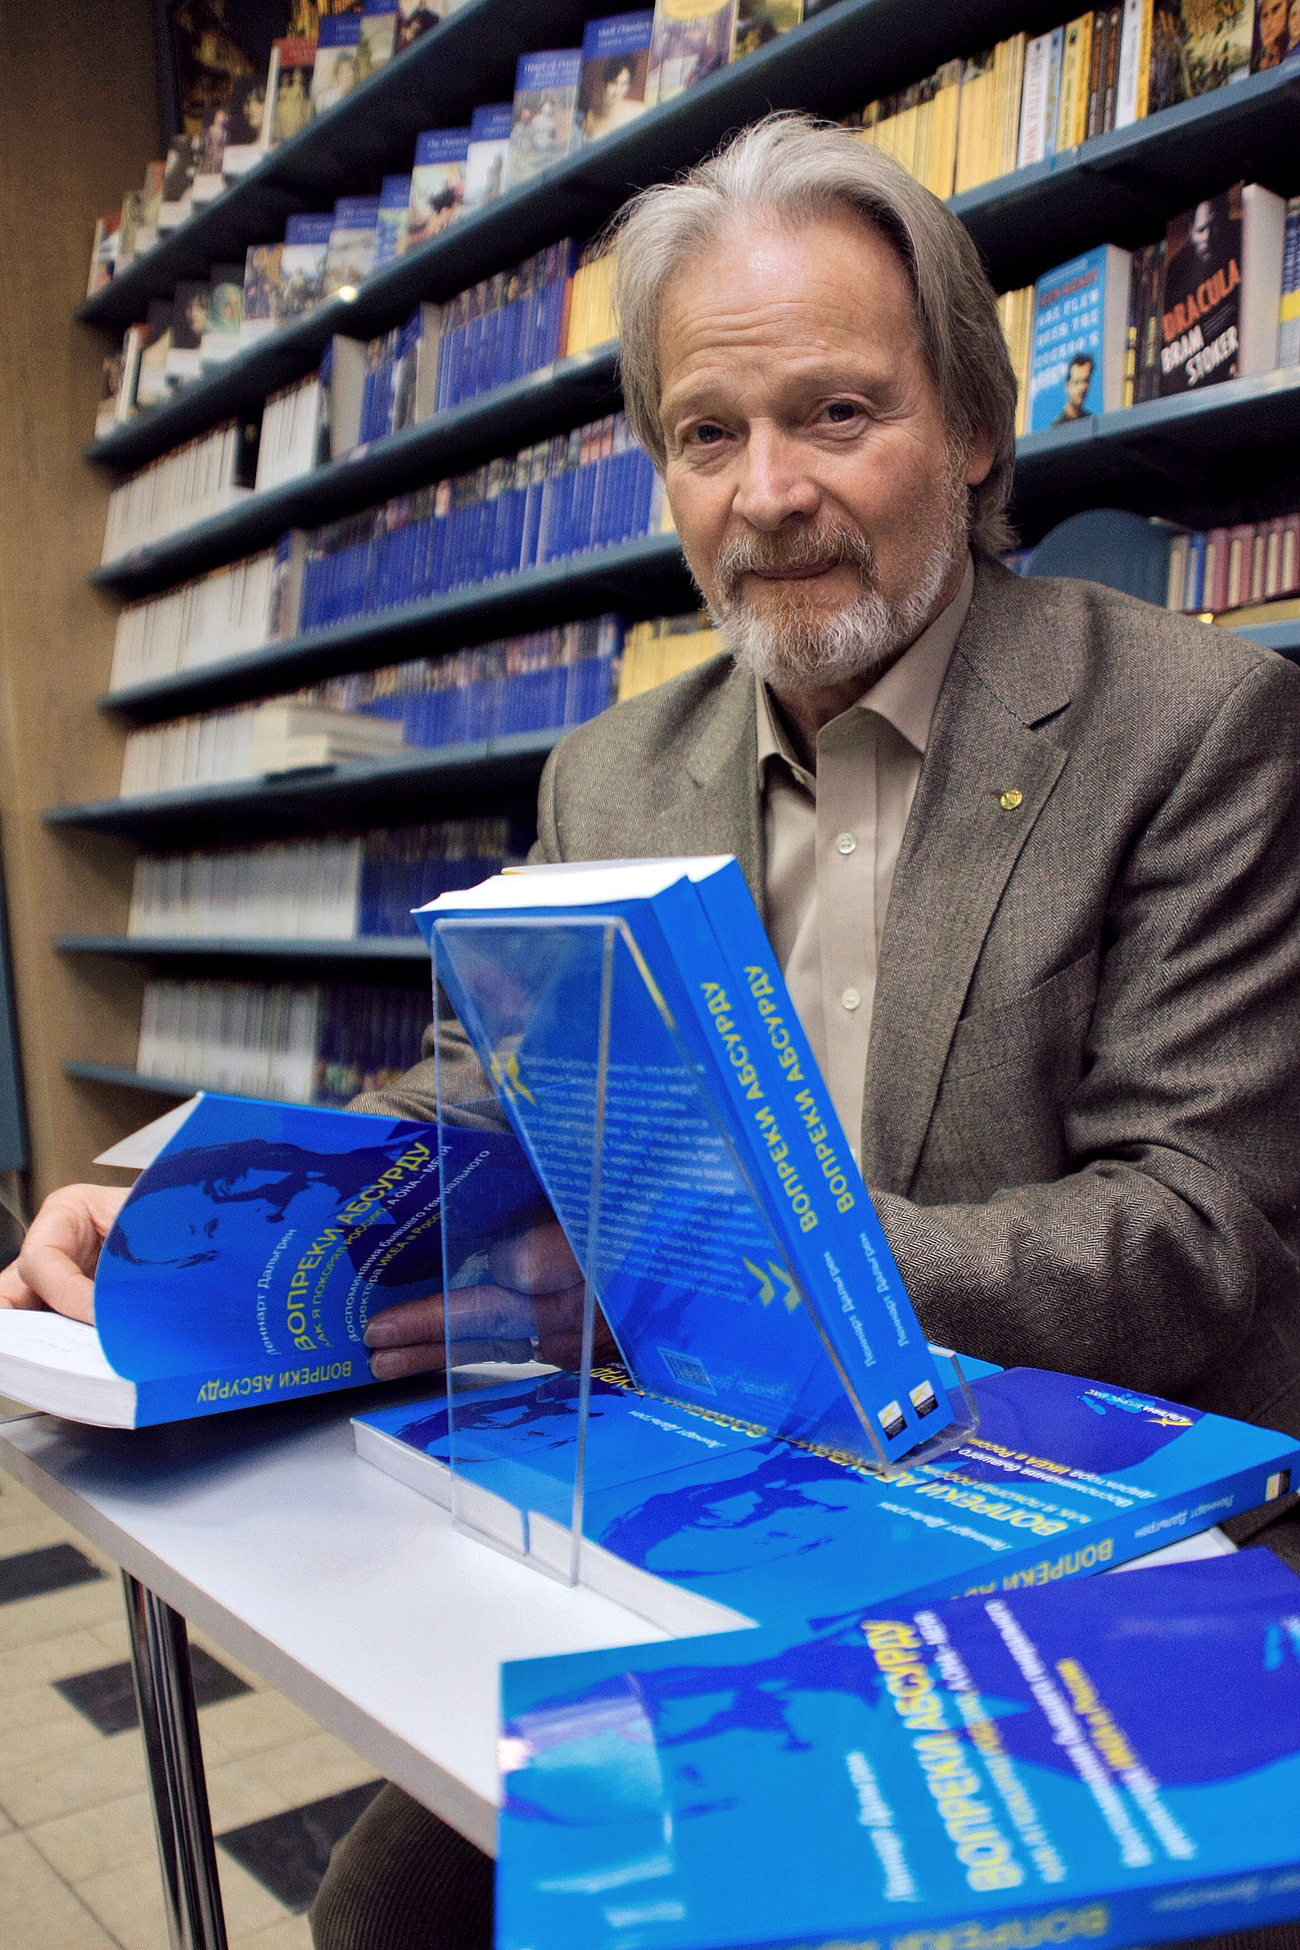 Lennart Dahlgren released a book called 'Despite Absurdity: How I Conquered Russia While It Conquered Me'/ Kommersant